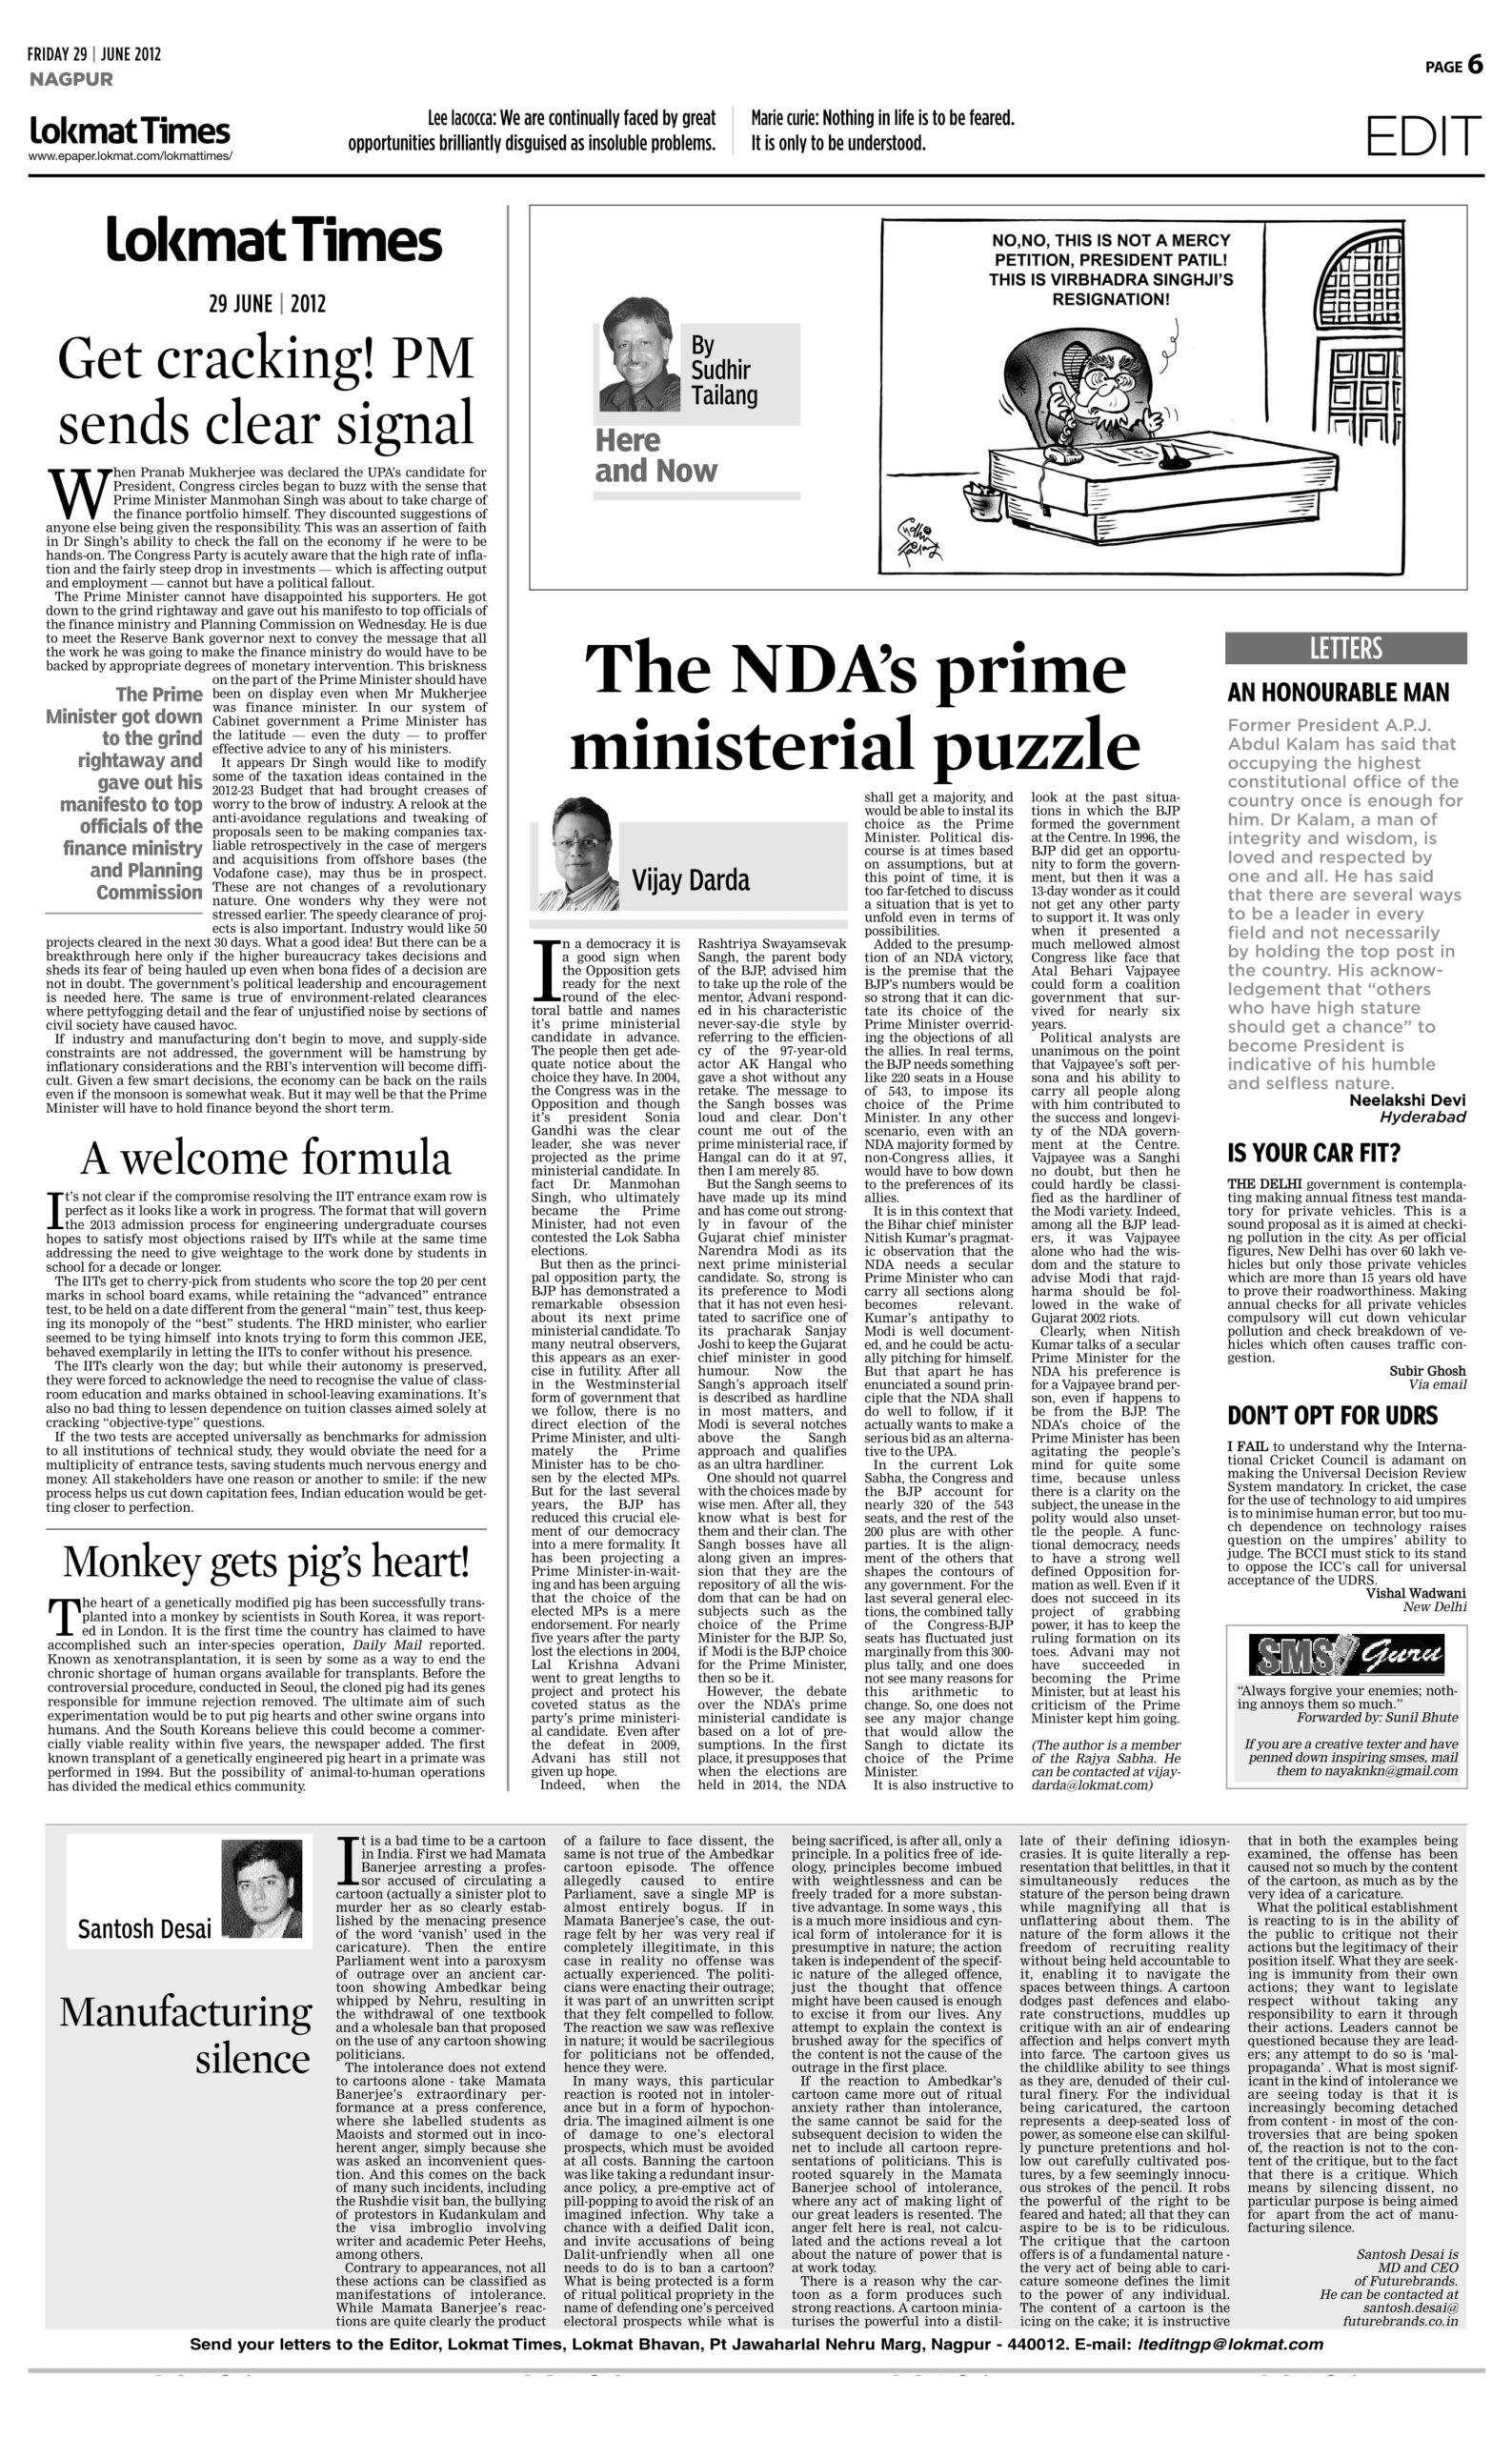 The NDA's prime ministerial puzzle